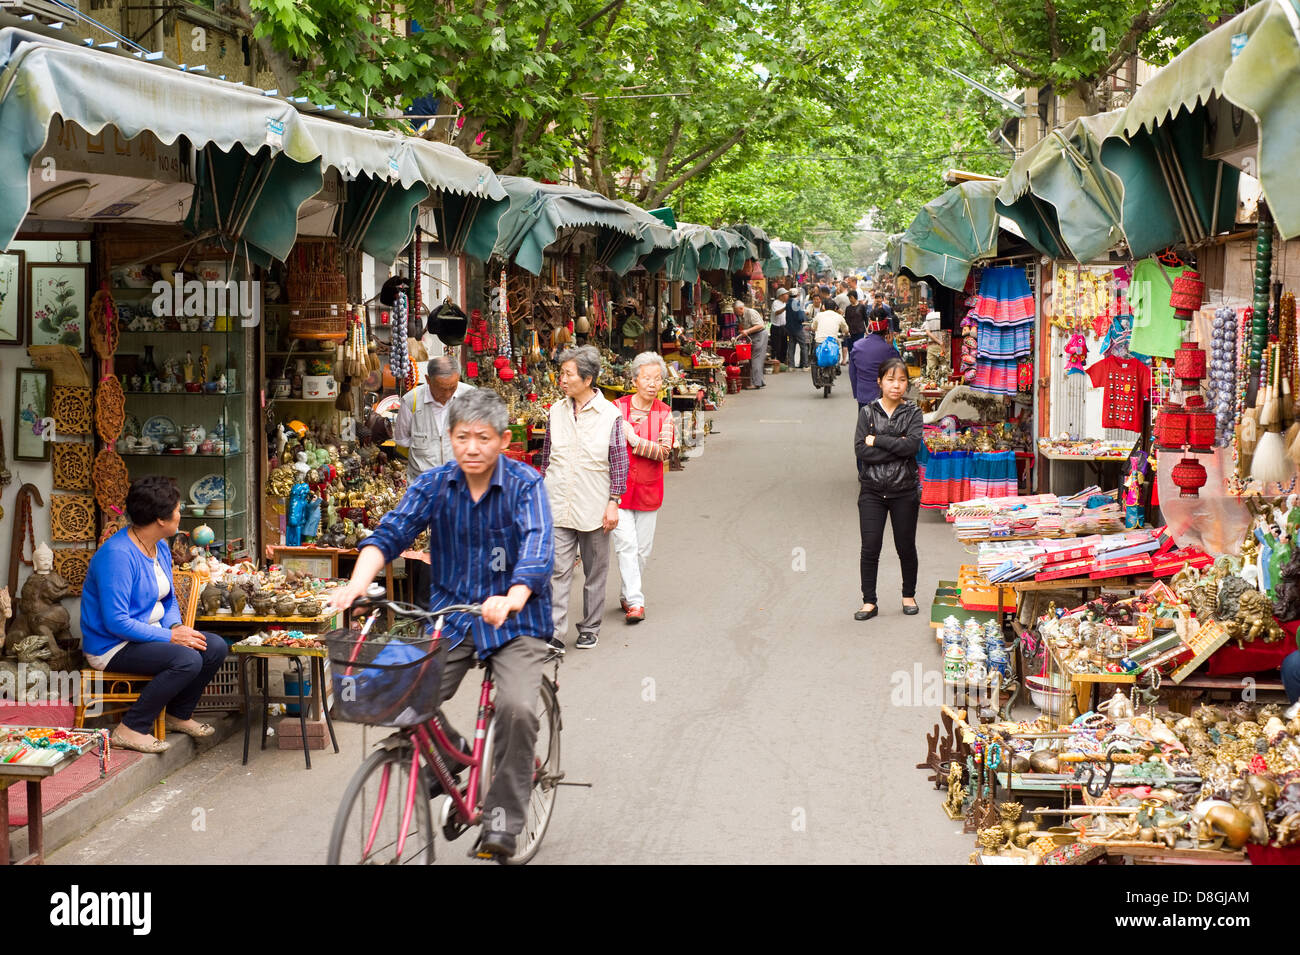 The Dongtai Road Antique Market in Shanghai, China. - Stock Image